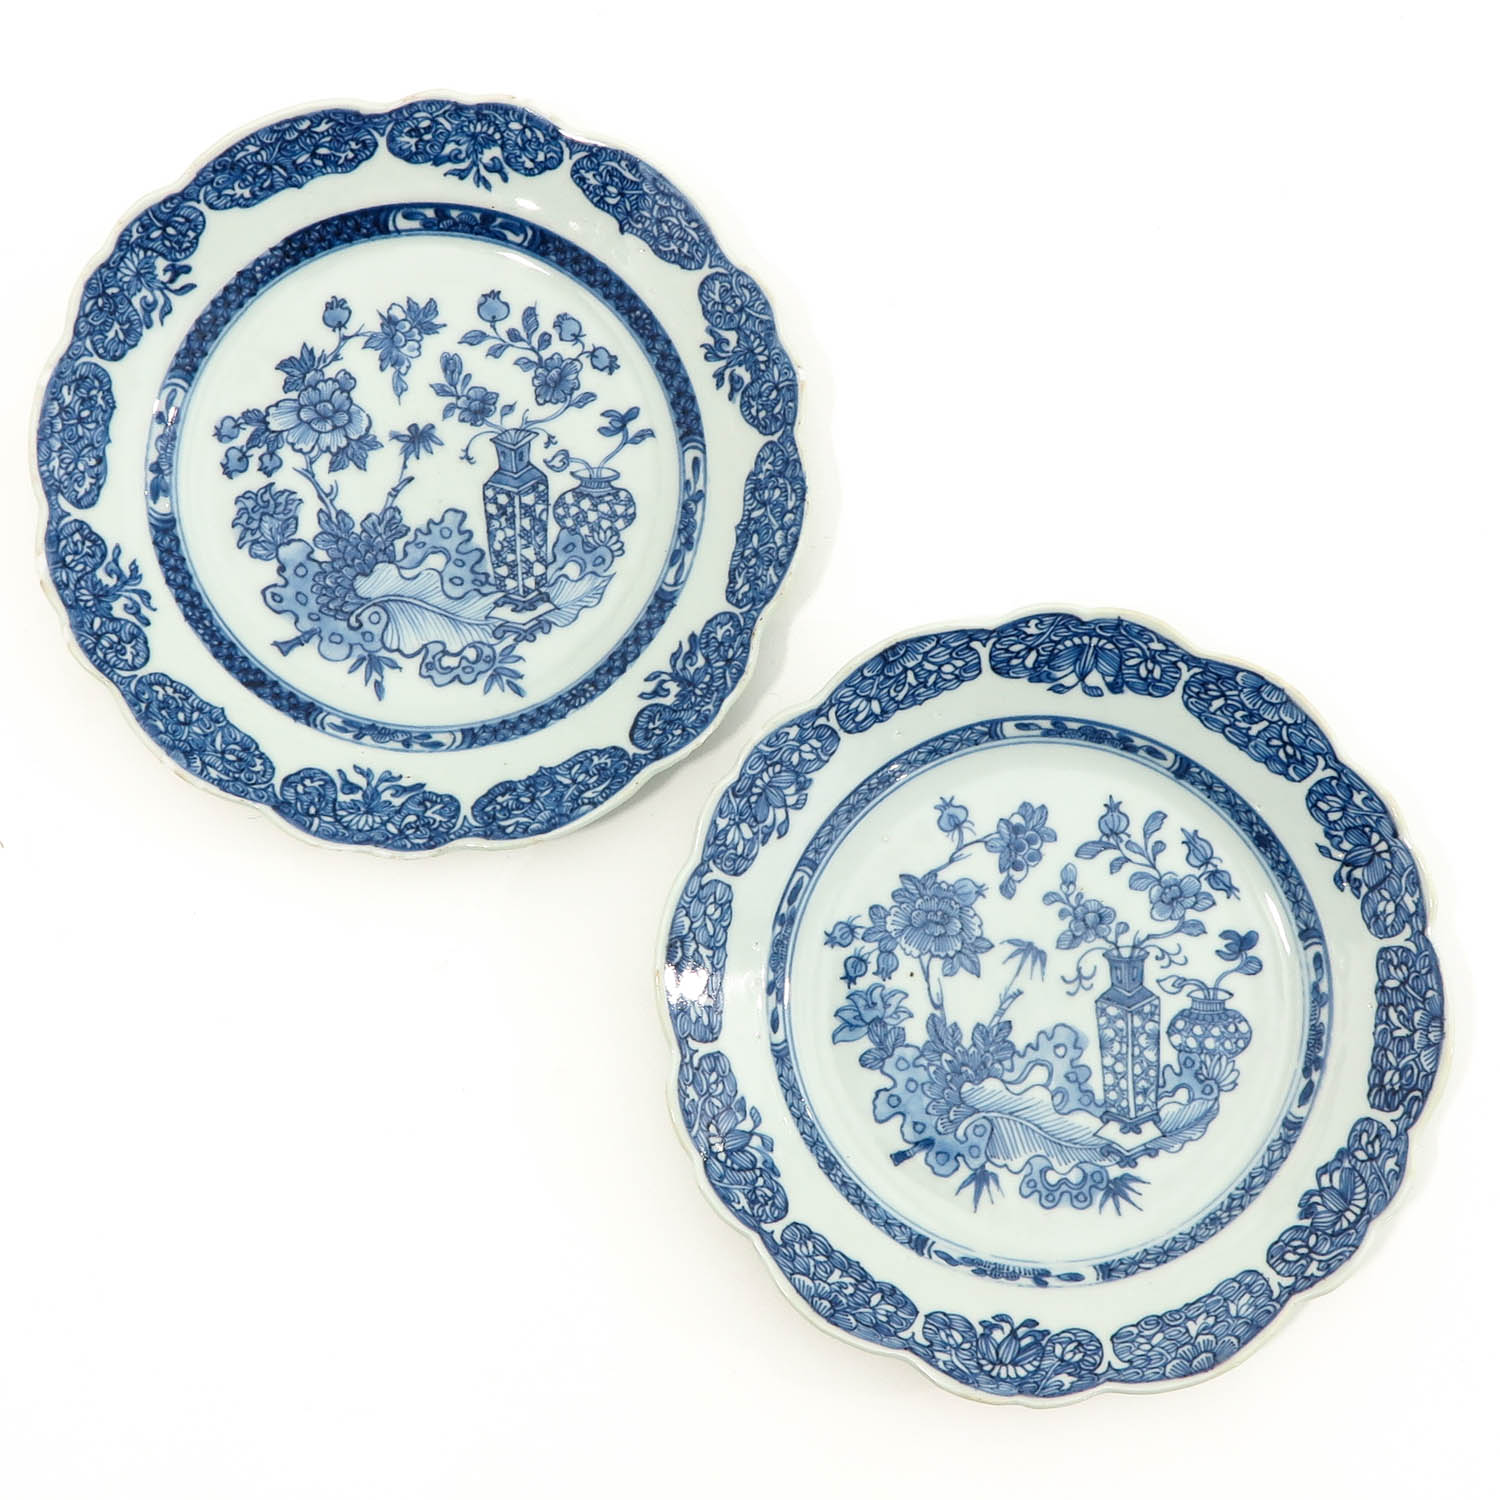 A Set of 6 Blue and White Plates - Image 3 of 10